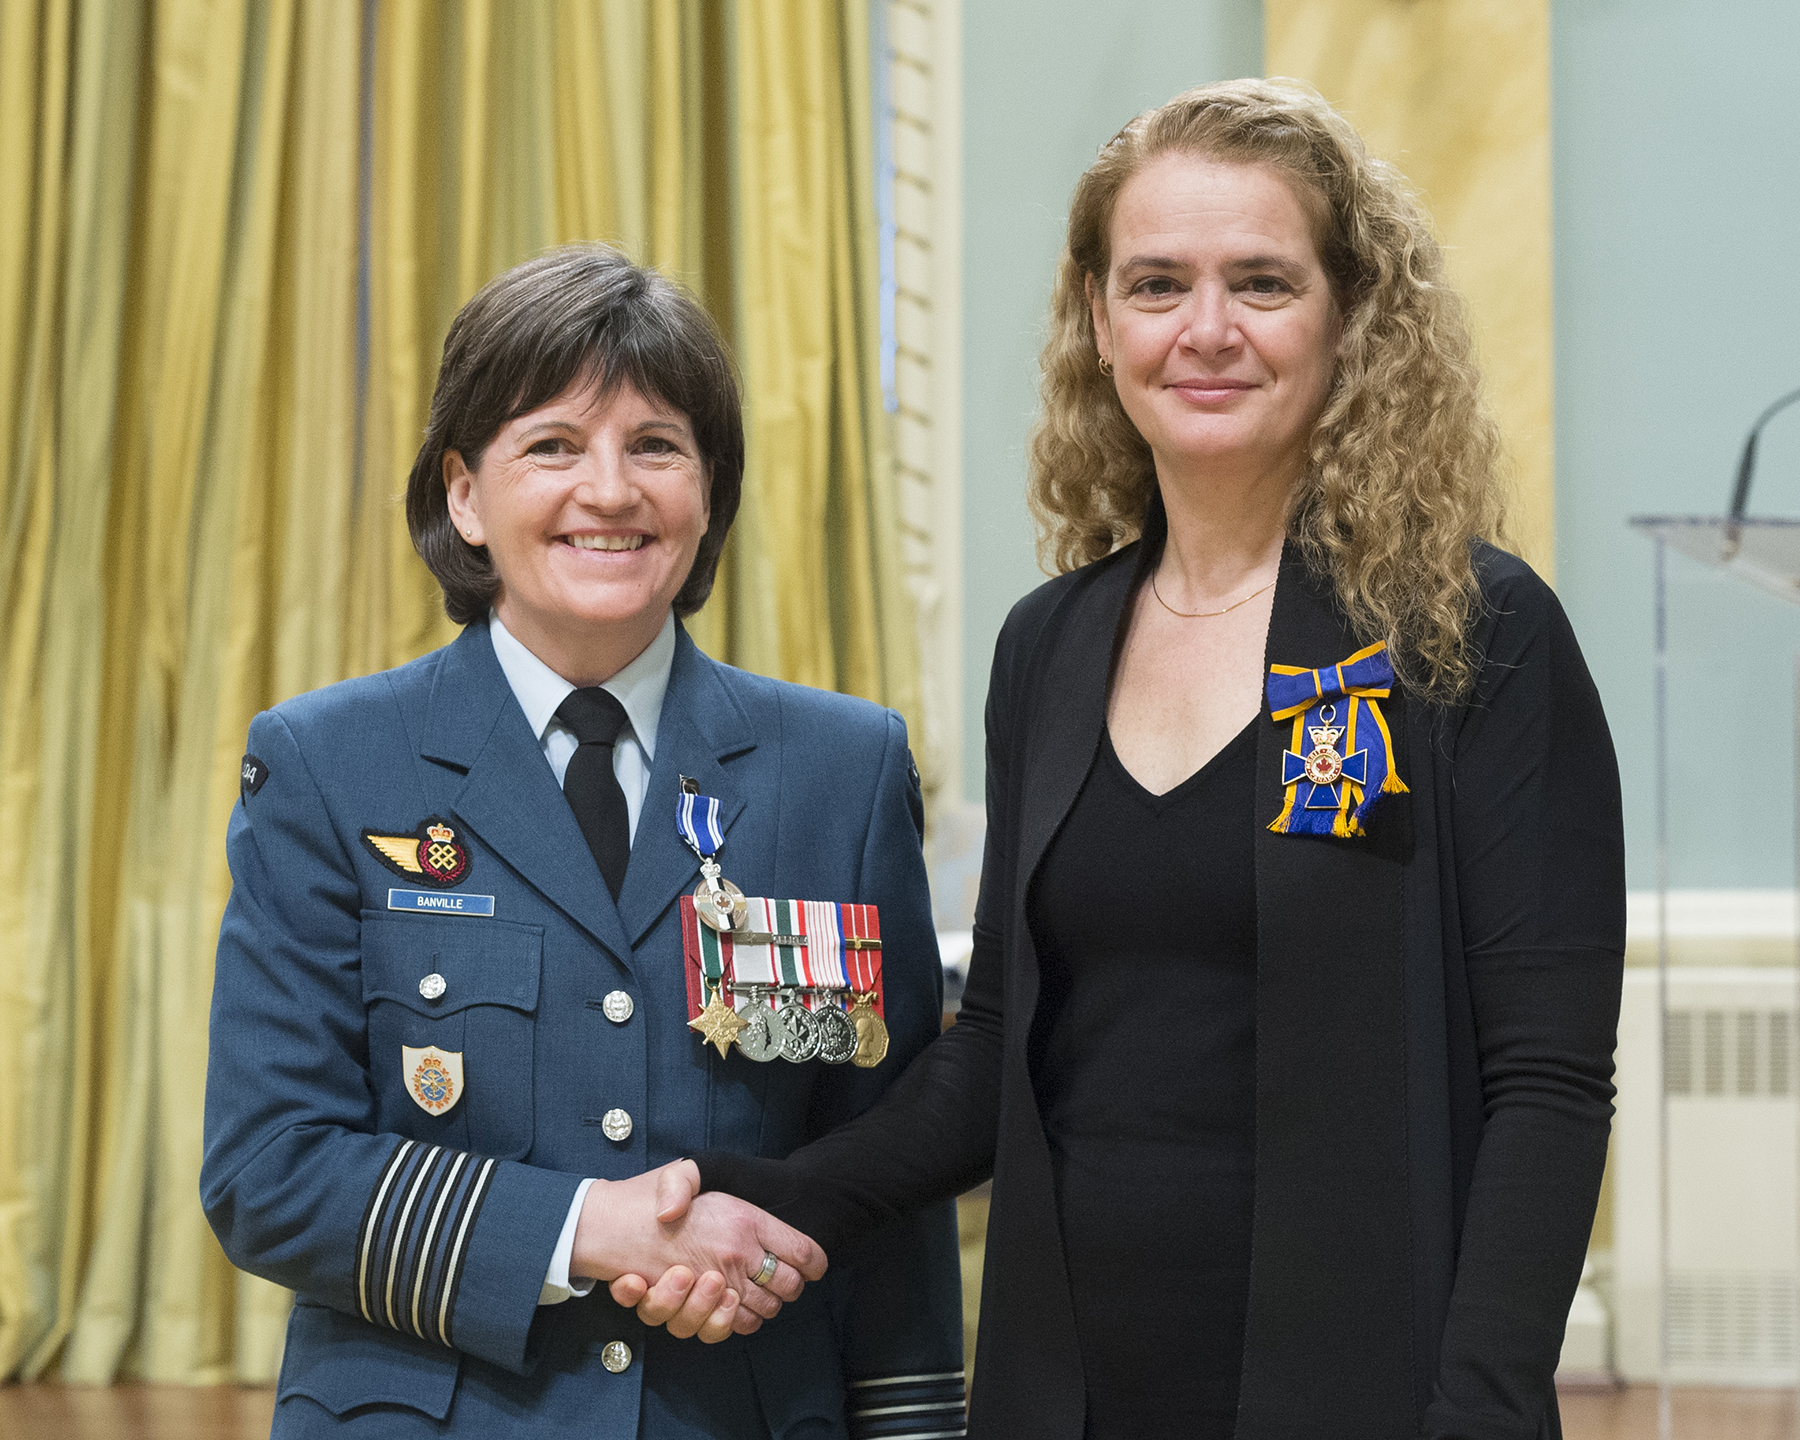 Colonel Angela Marie Banville receives the Meritorious Service Medal (Military Division) from Governor General and Commander-in-Chief of Canada Julie Payette on February 28, 2018. PHOTO: Sergeant Johanie Maheu, OSGG, GG05-2018-0066-021